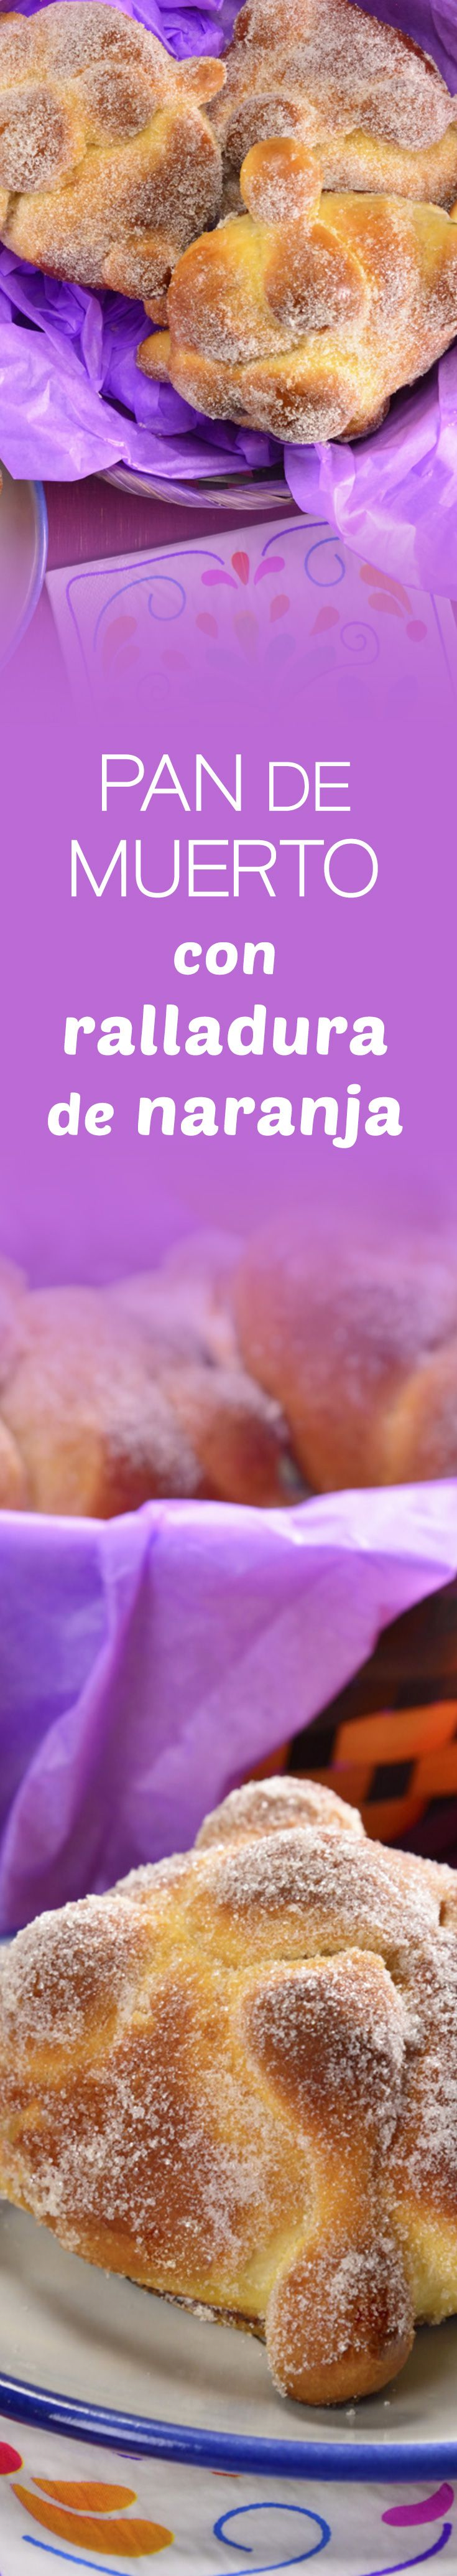 Prepare this traditional and spongy pan de muerto for the day of the dead parties with a rich flavor of orange and frosty sugar that you will love. Mexican Sweet Breads, Mexican Bread, Mexican Dishes, Mexican Cooking, Mexican Food Recipes, Latin Food, Cookie Desserts, Desert Recipes, Cakes And More